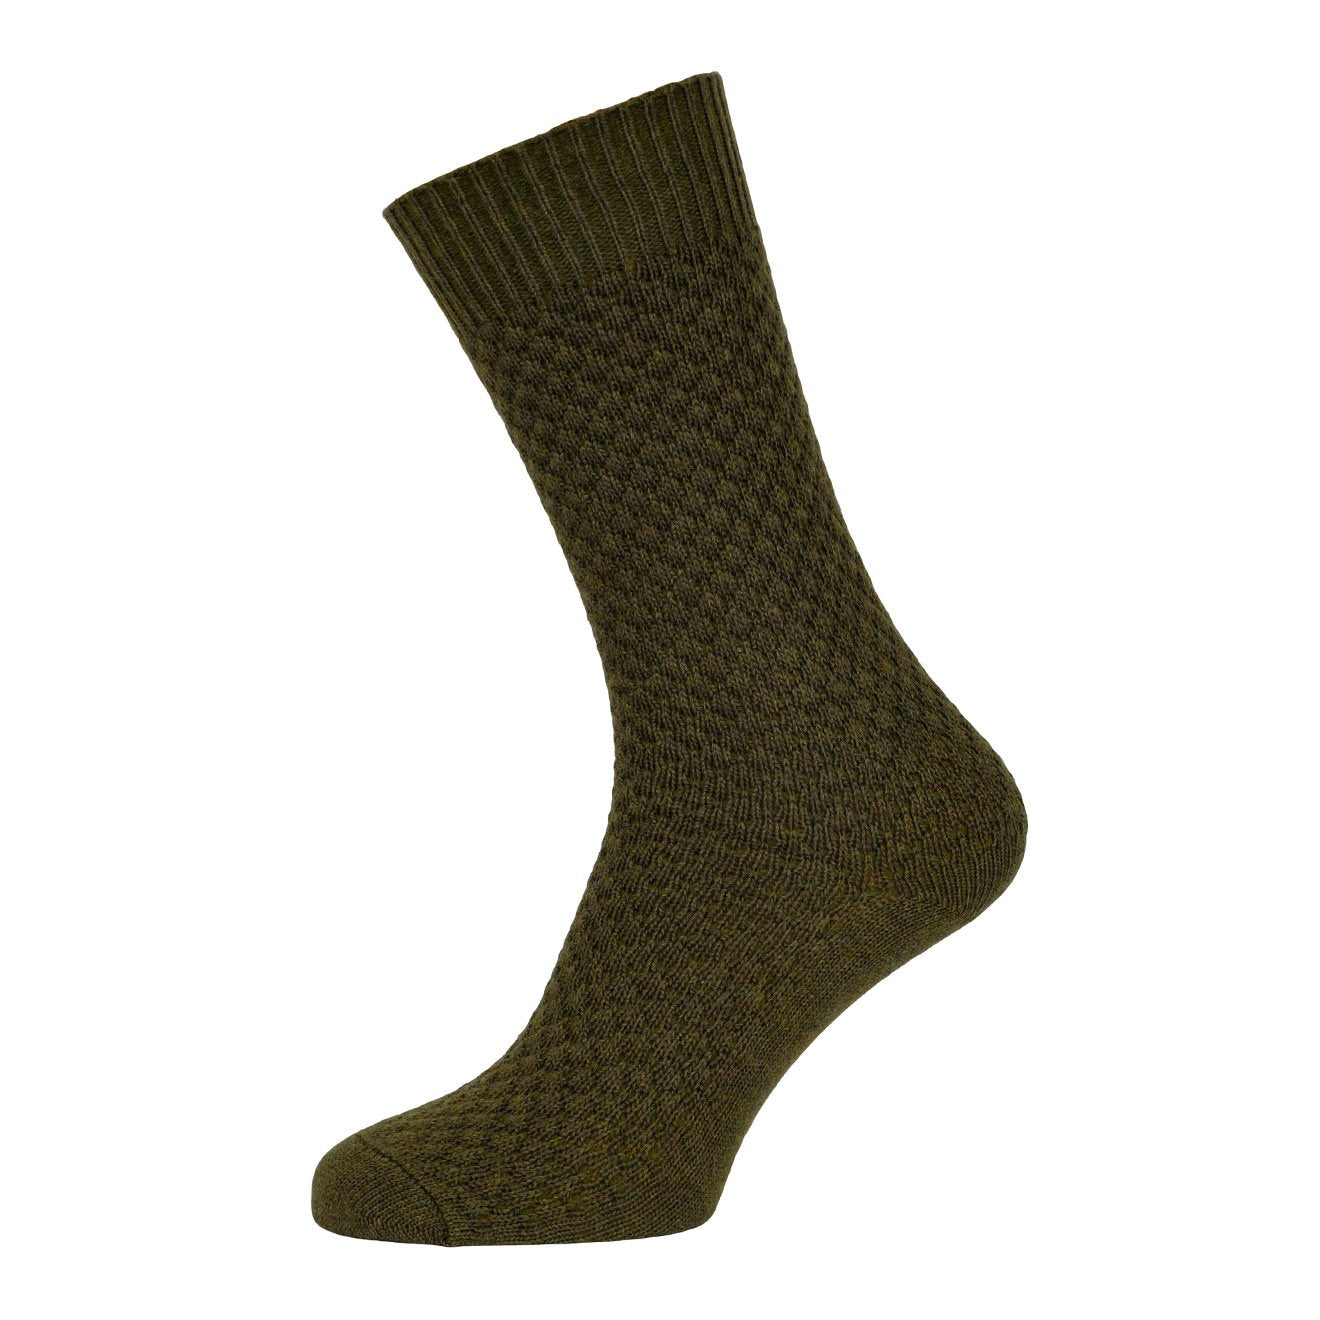 MP Crafted Garments Socks Oscar Military Green